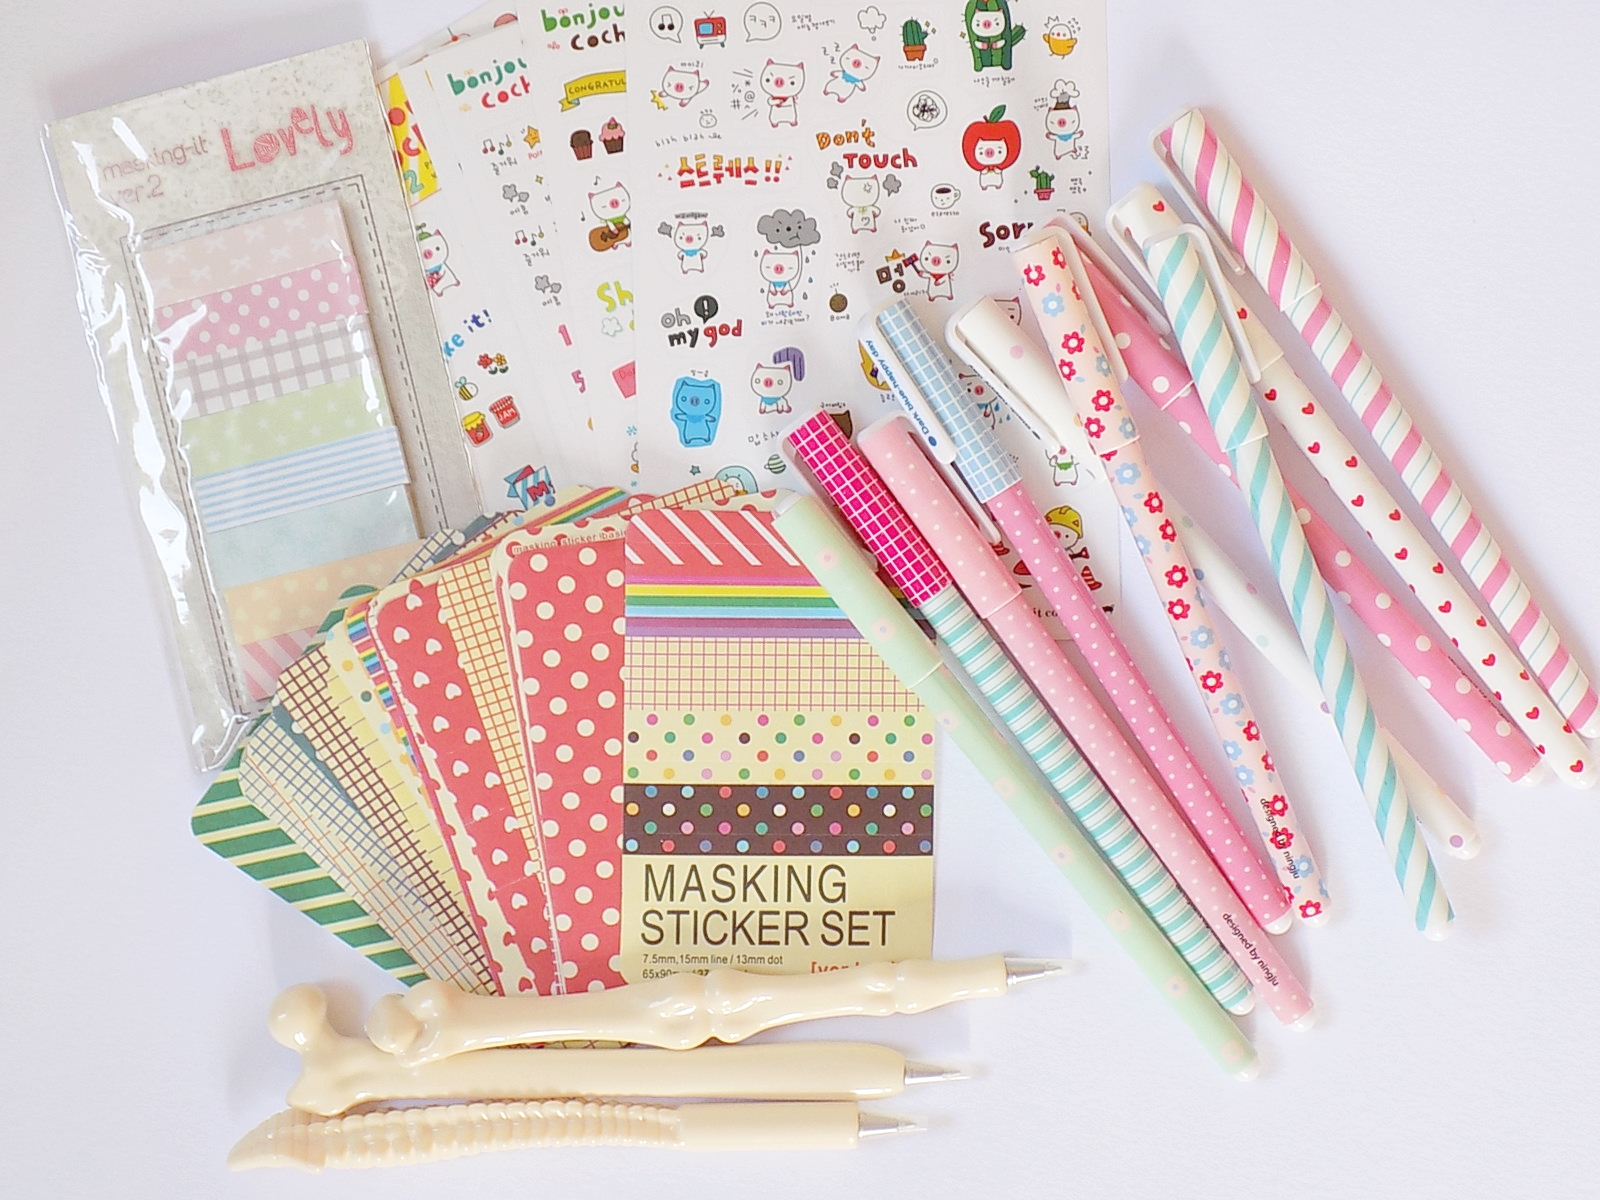 Aliexpress tipy  6 Stationery edition - Blogerky.cz ae0423cd973